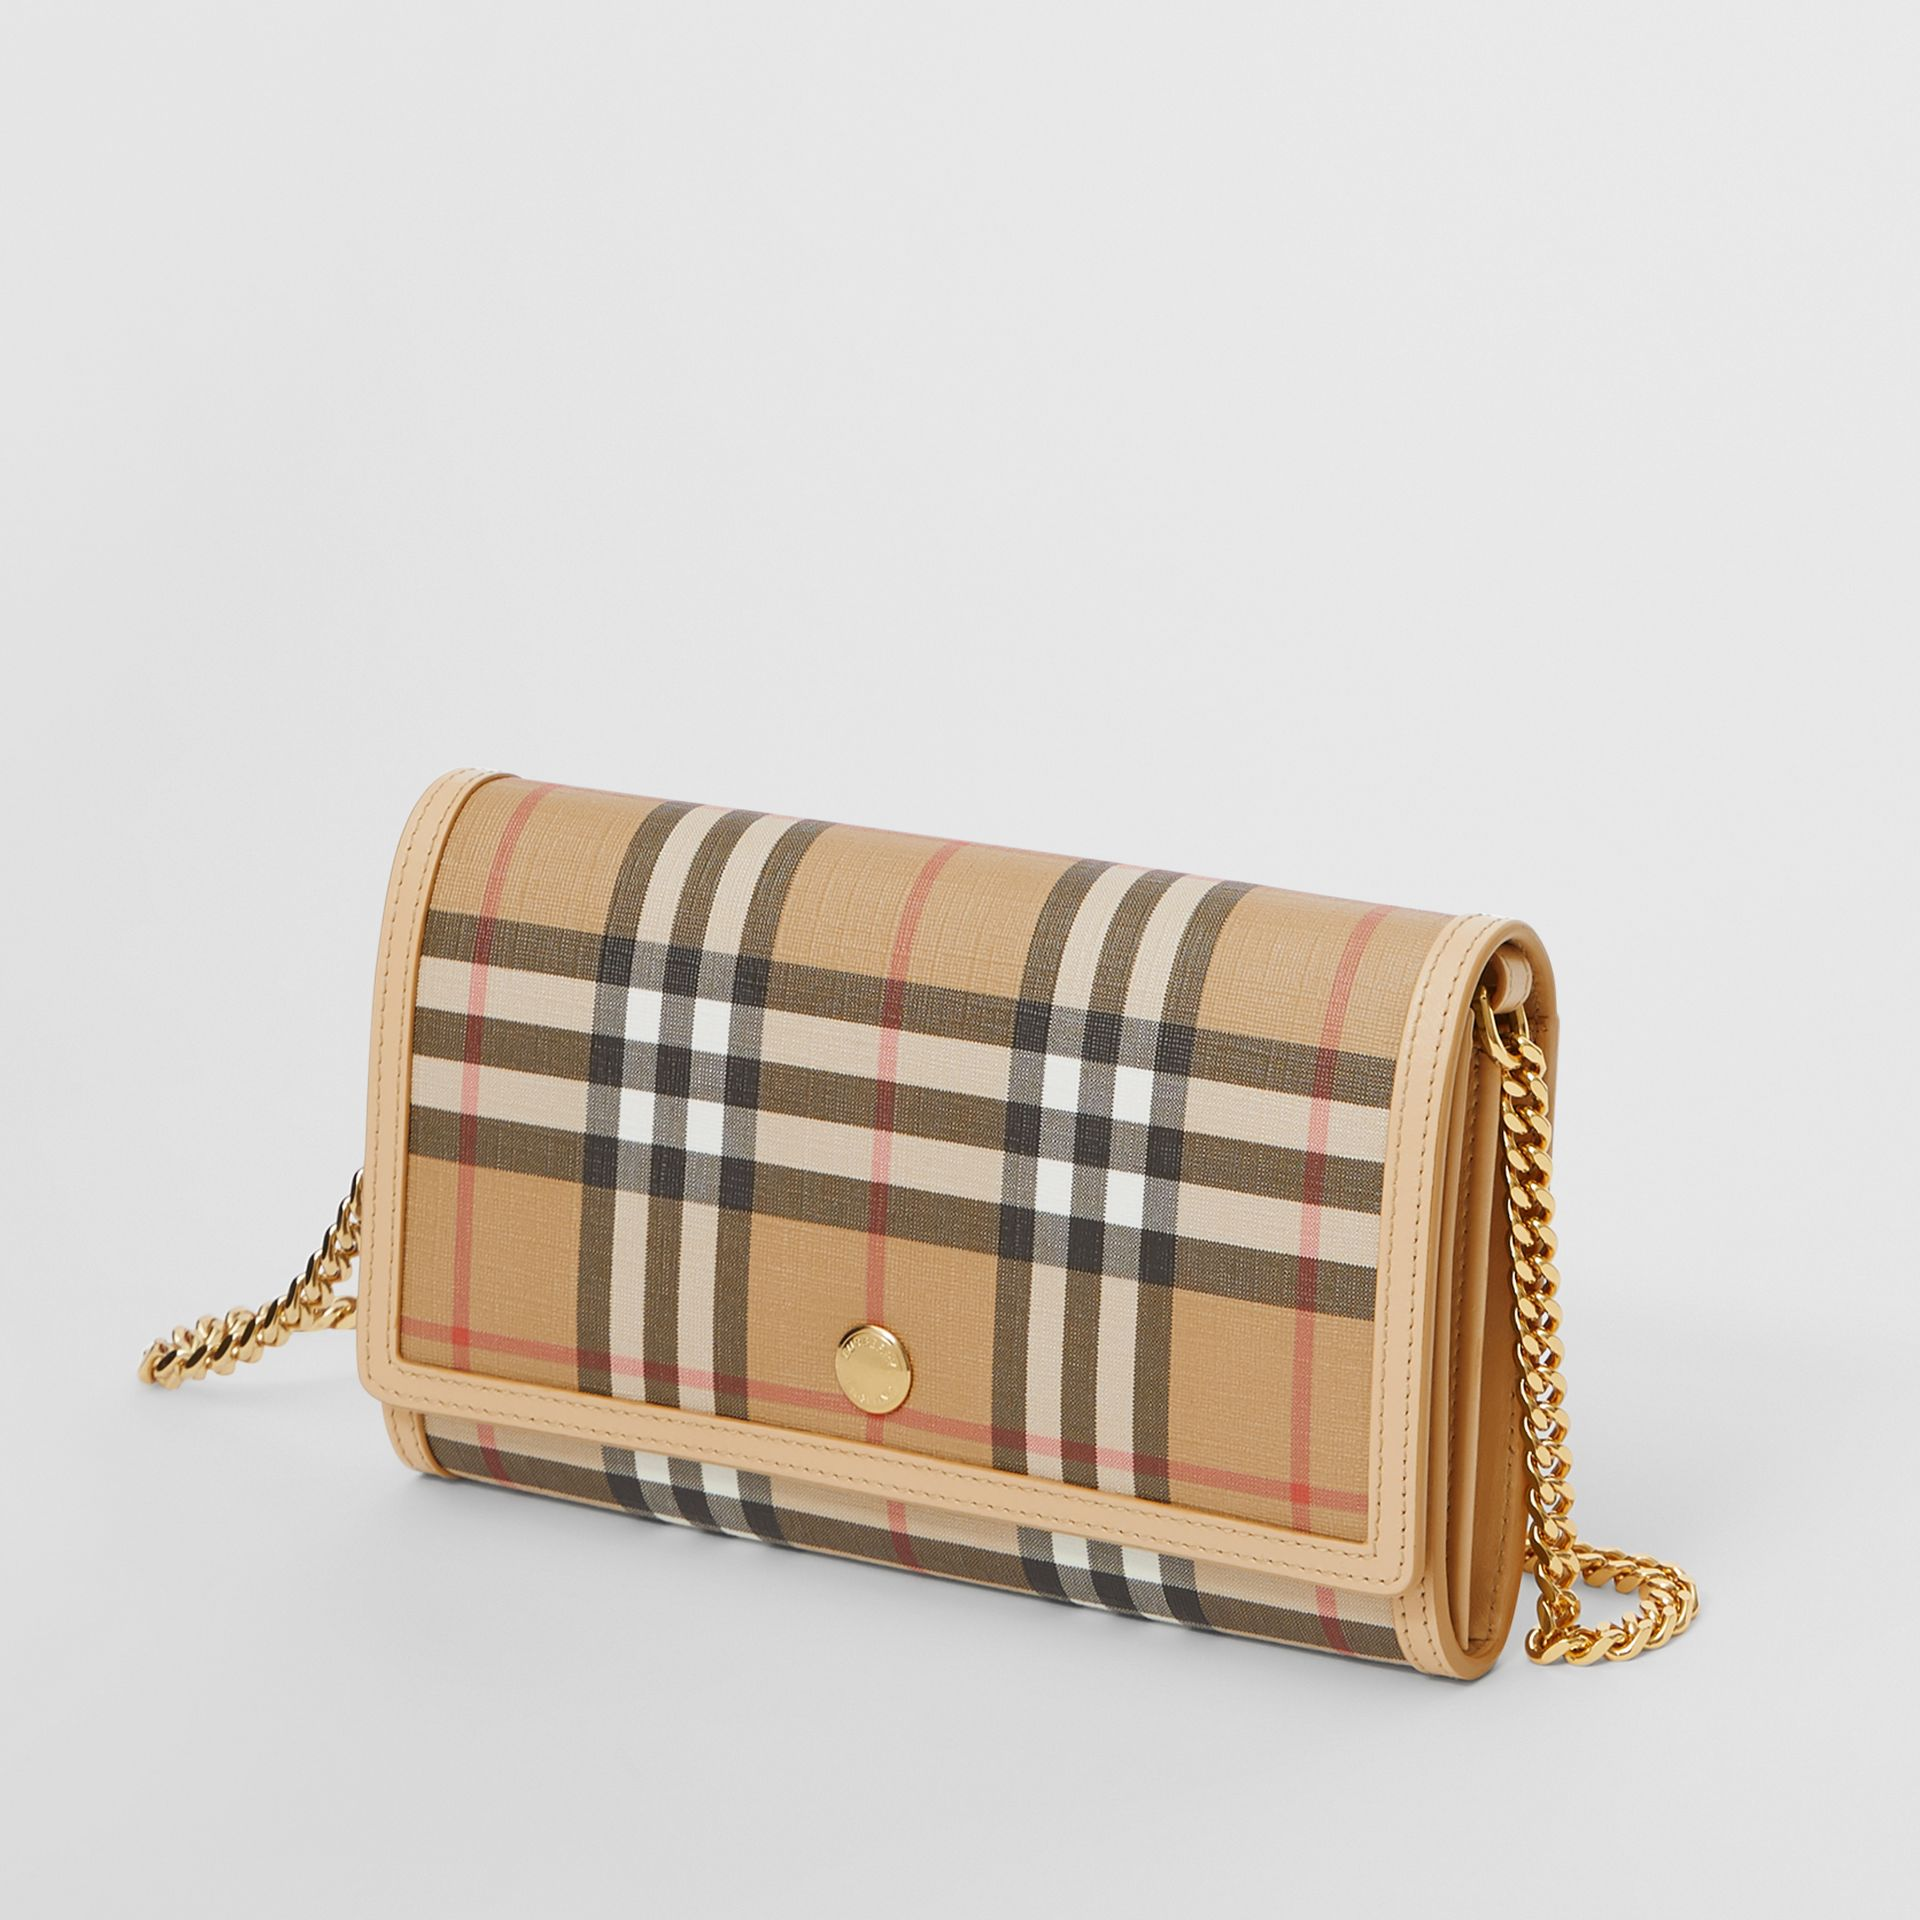 Vintage Check E-canvas Wallet with Detachable Strap in Beige - Women | Burberry United Kingdom - gallery image 3